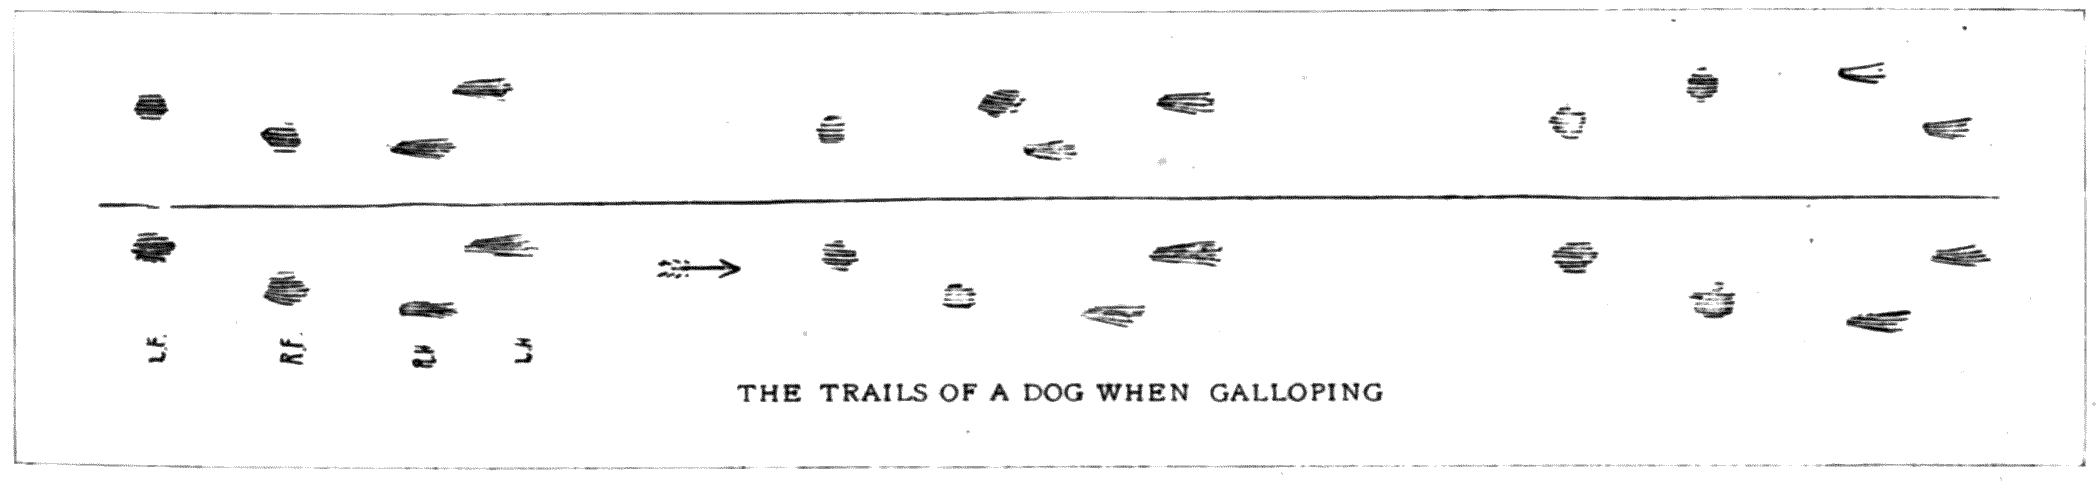 THE TRAILS OF A DOG WHEN GALLOPING